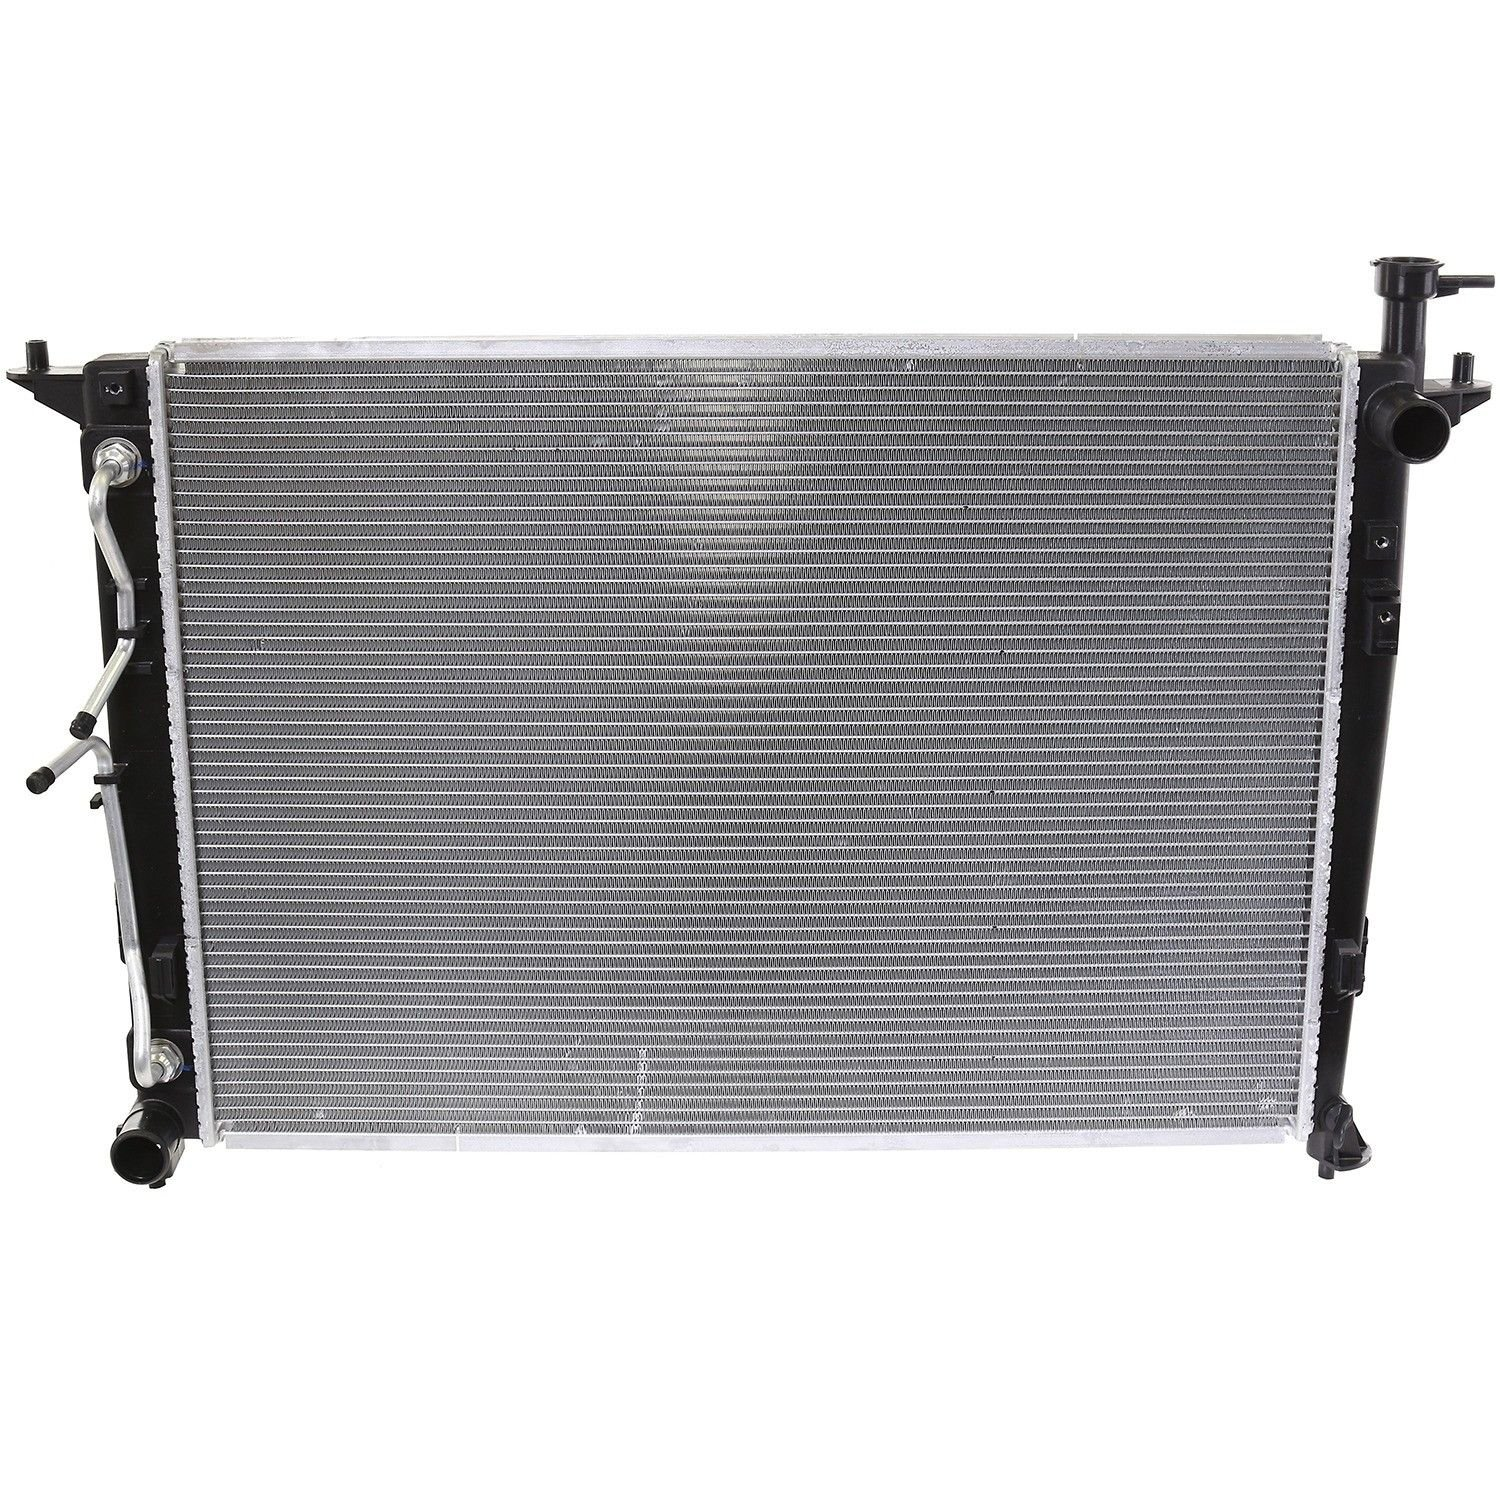 OE Replacement Acura TSX Radiator Multiple Manufacturers RAD2680 Partslink Number AC3010136